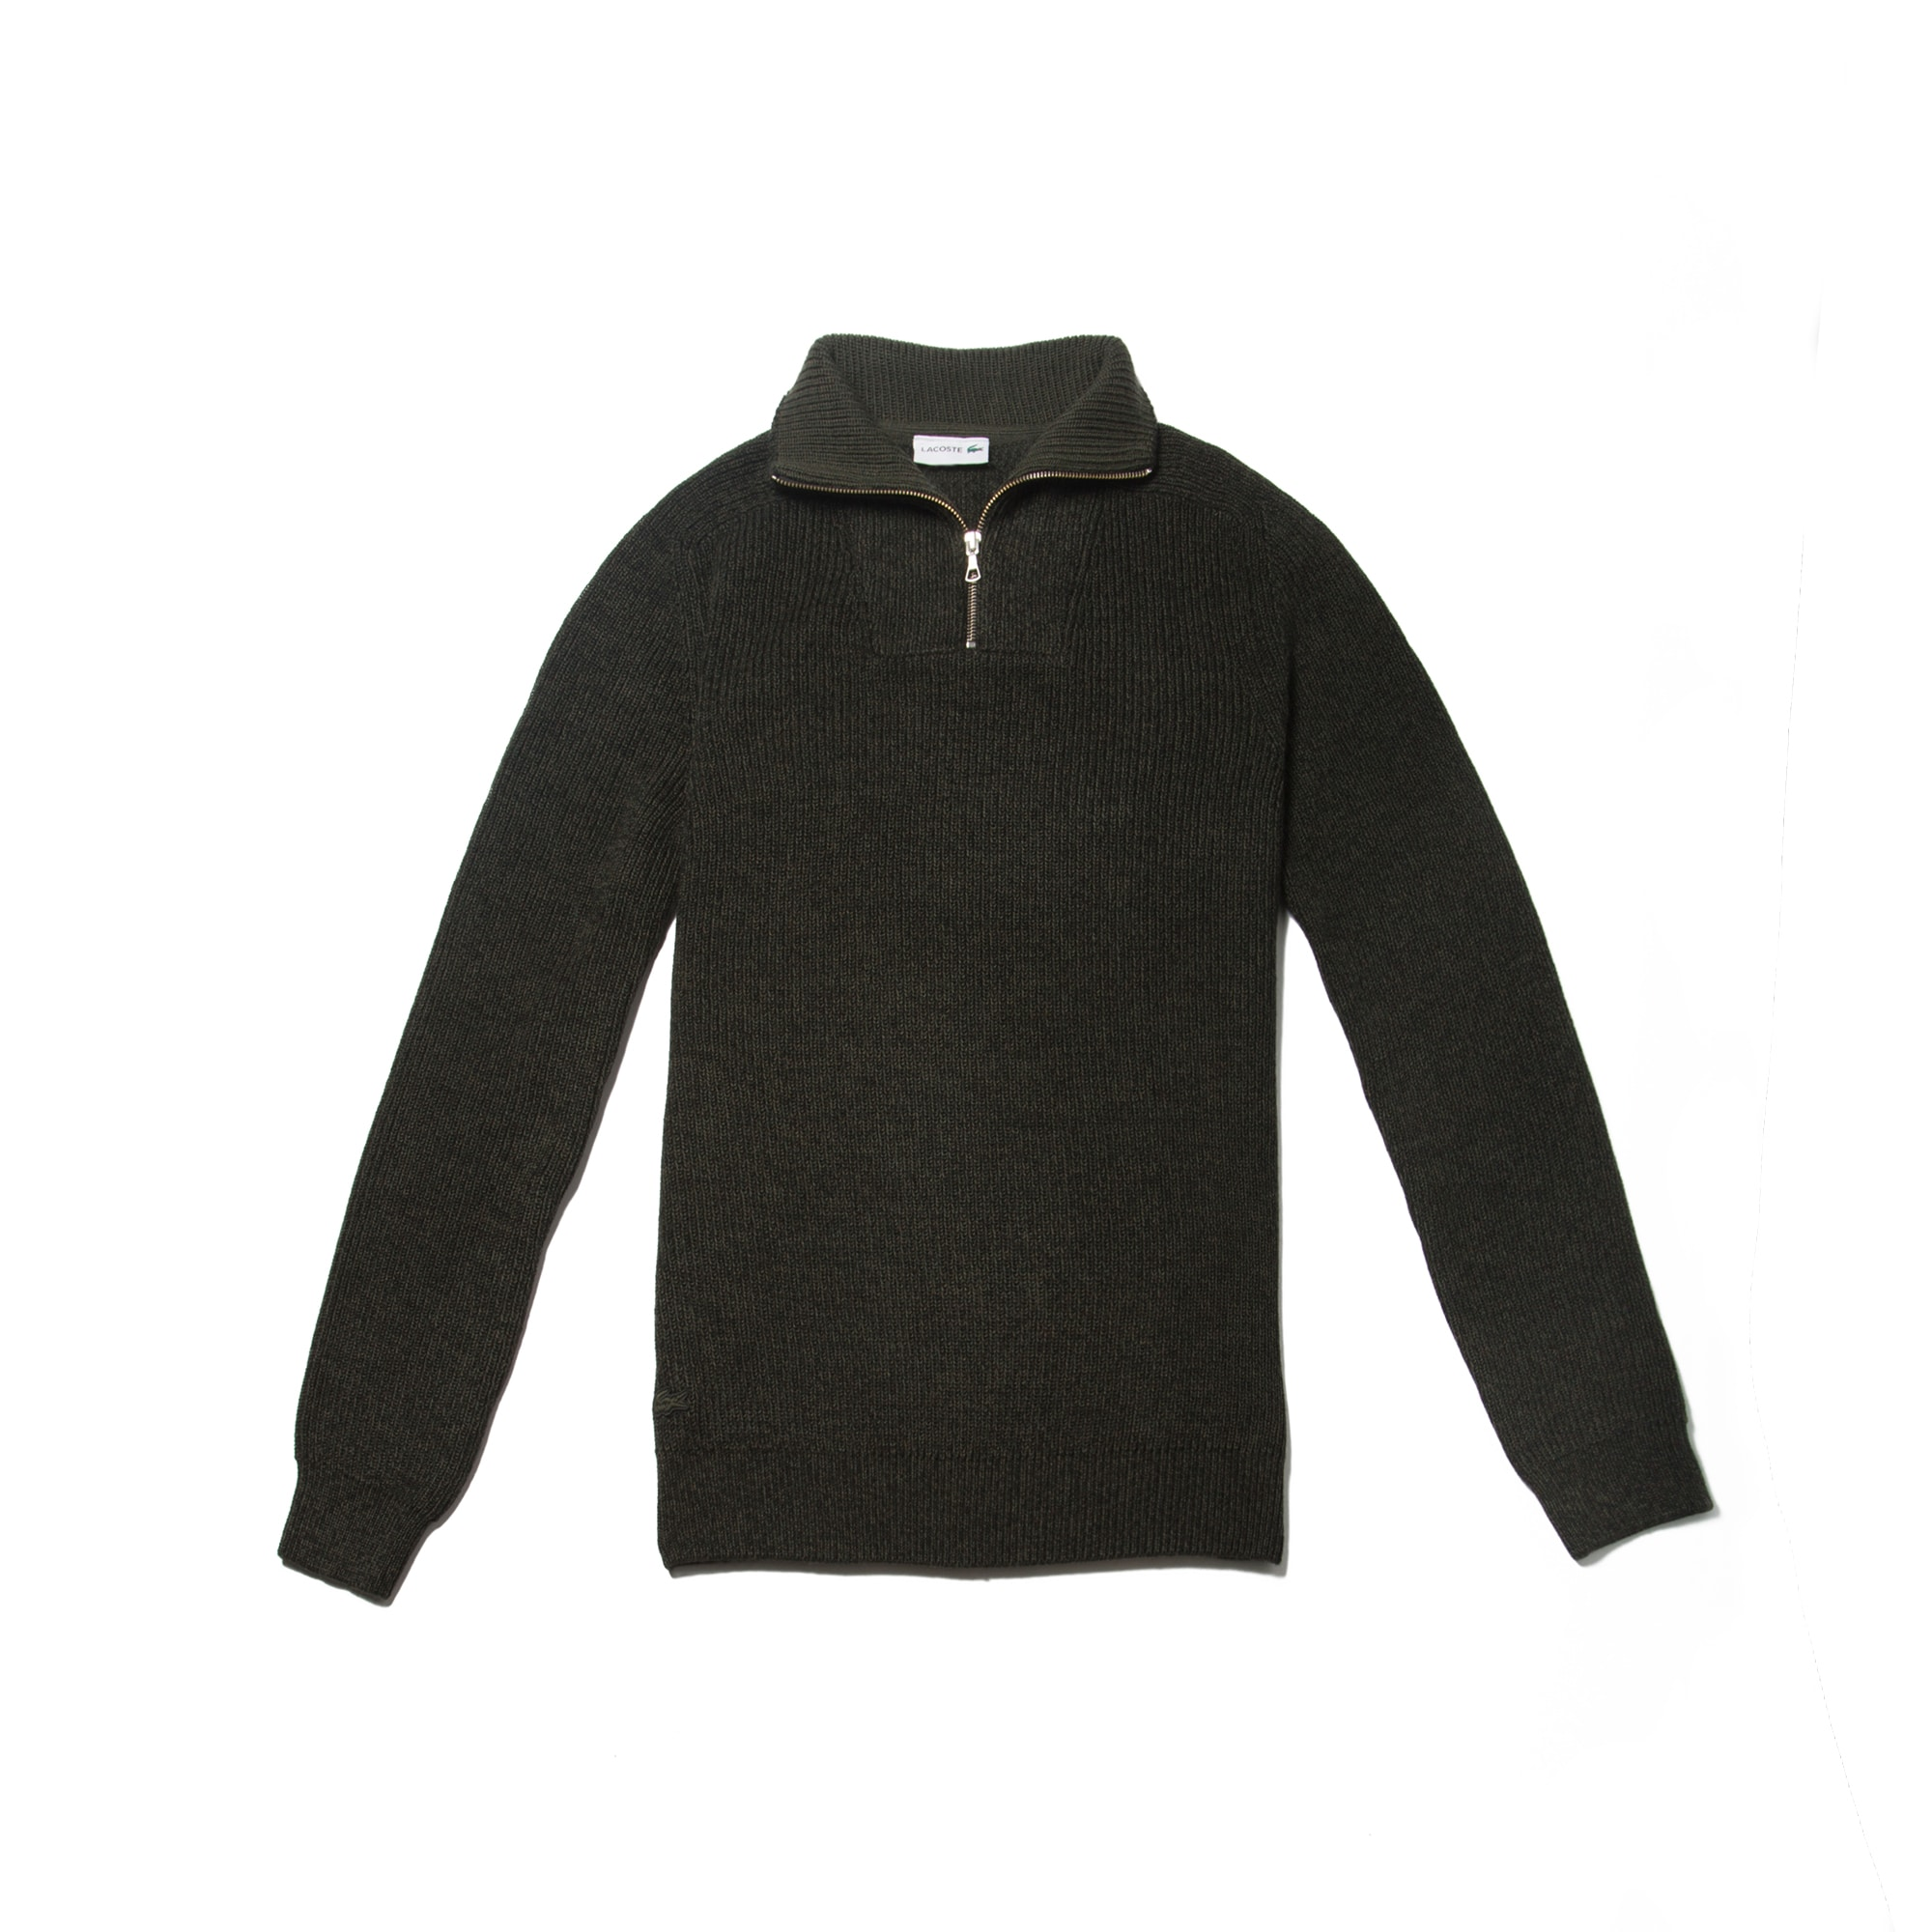 Men's Zippered Stand-Up Collar Ribbed Wool Sweater | LACOSTE